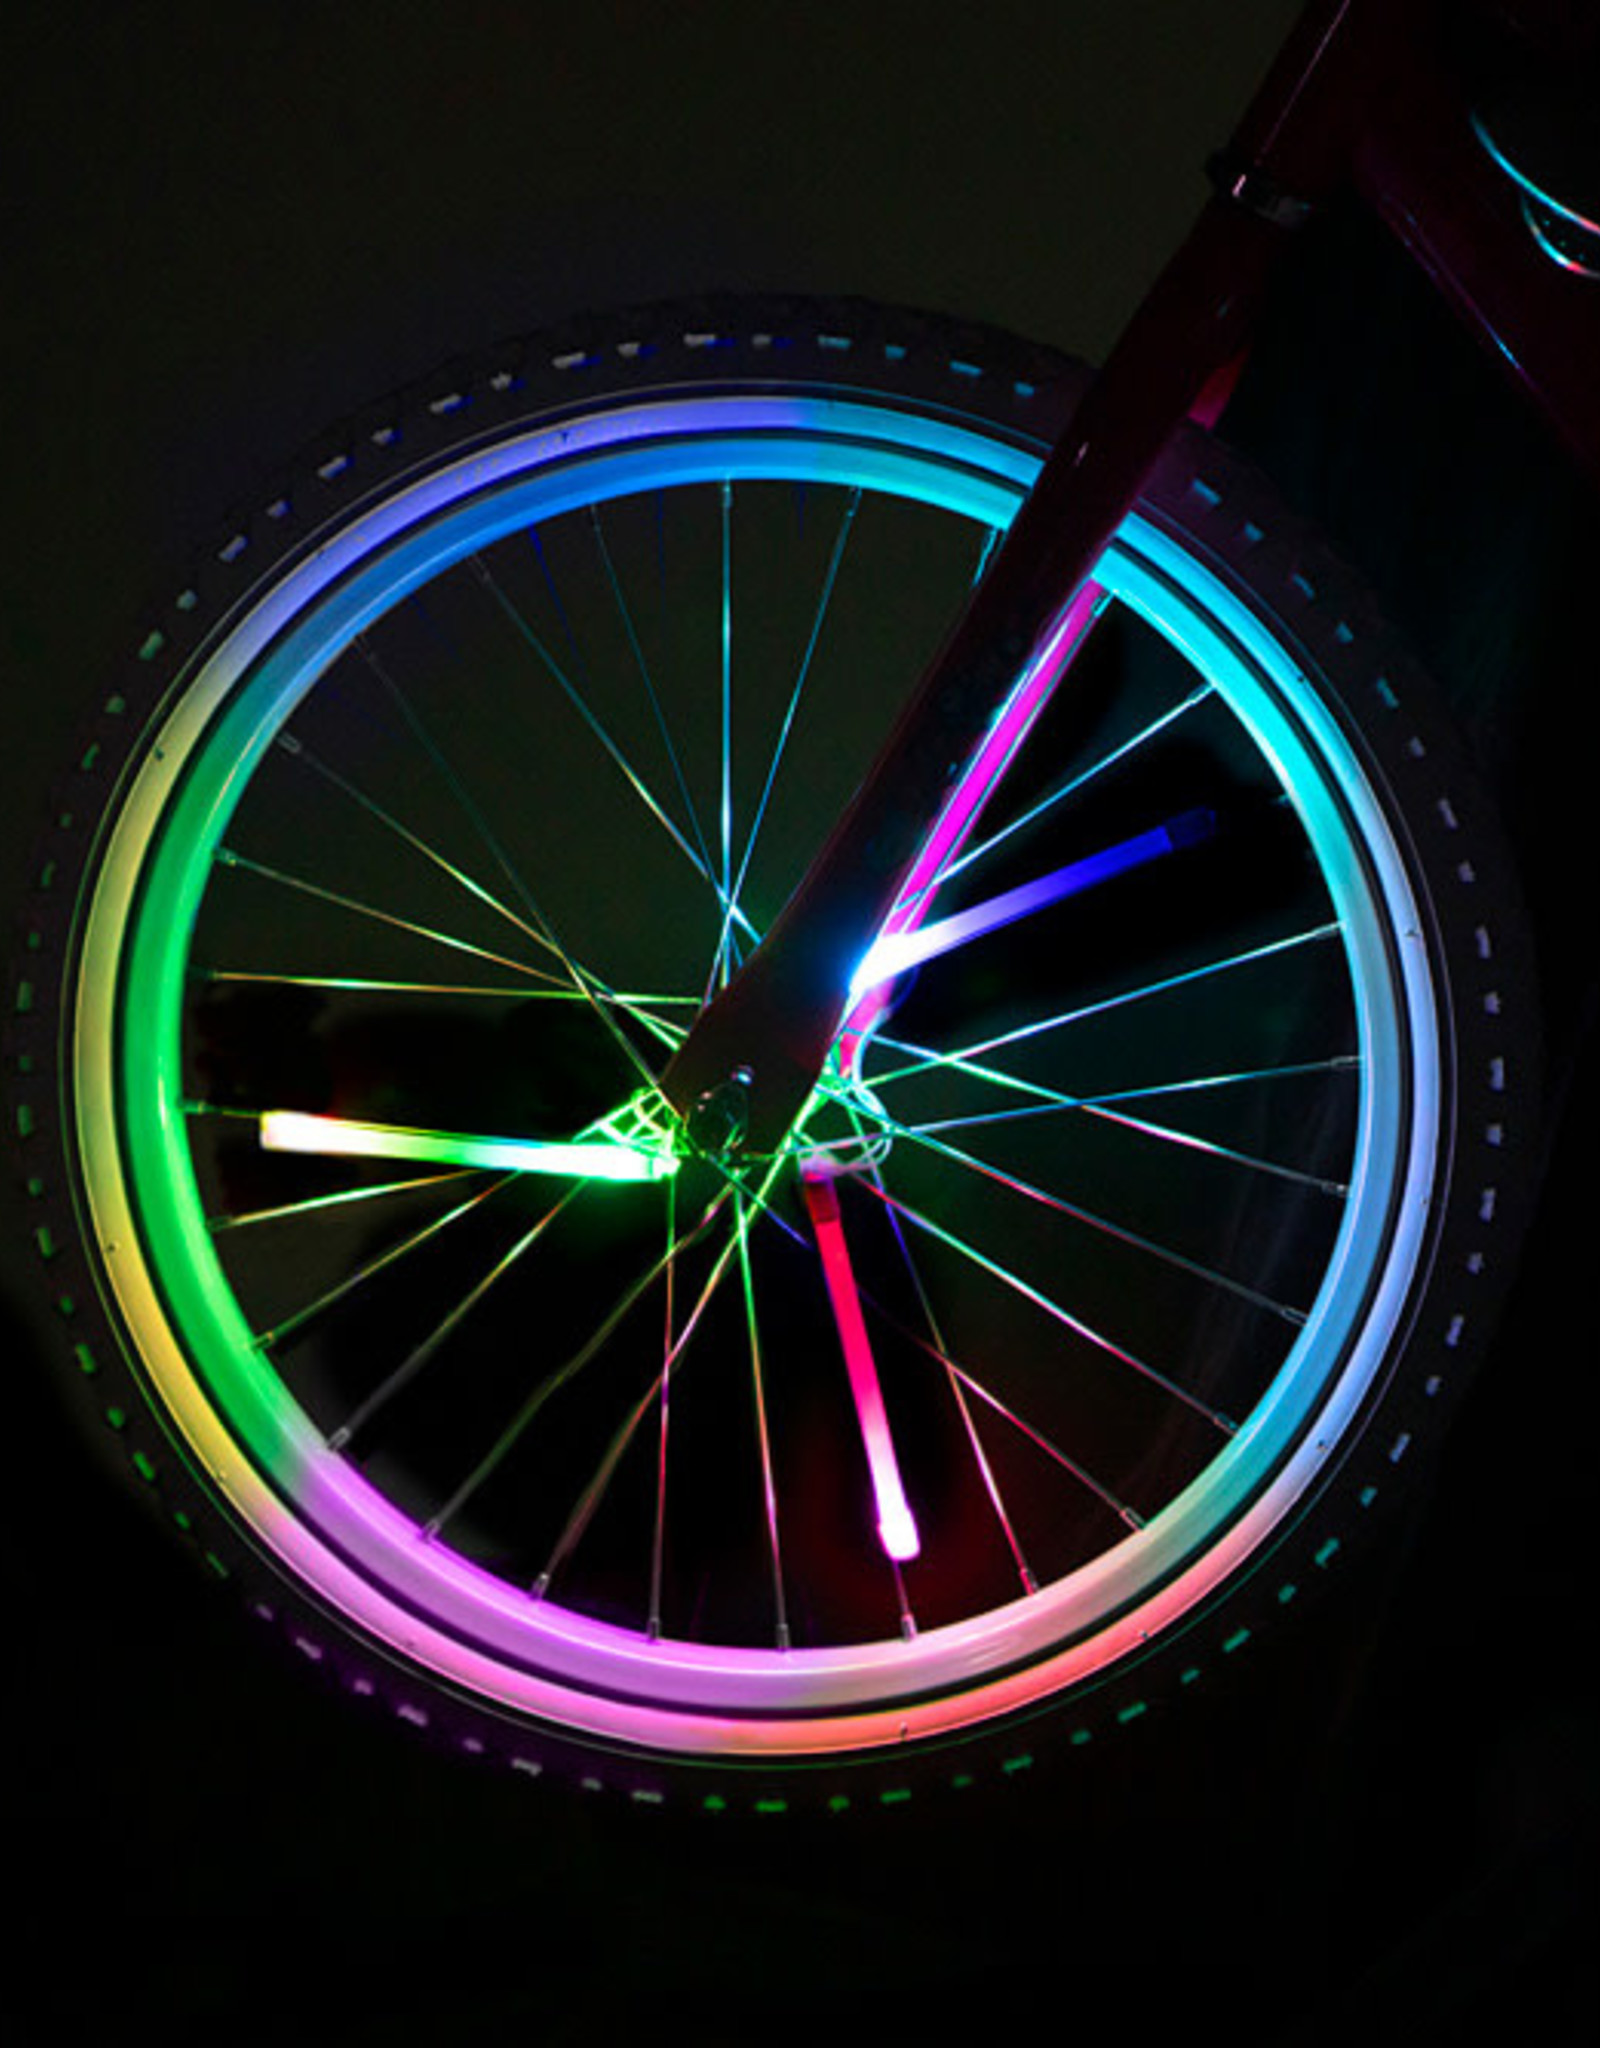 Spin Brightz - Color Morphing